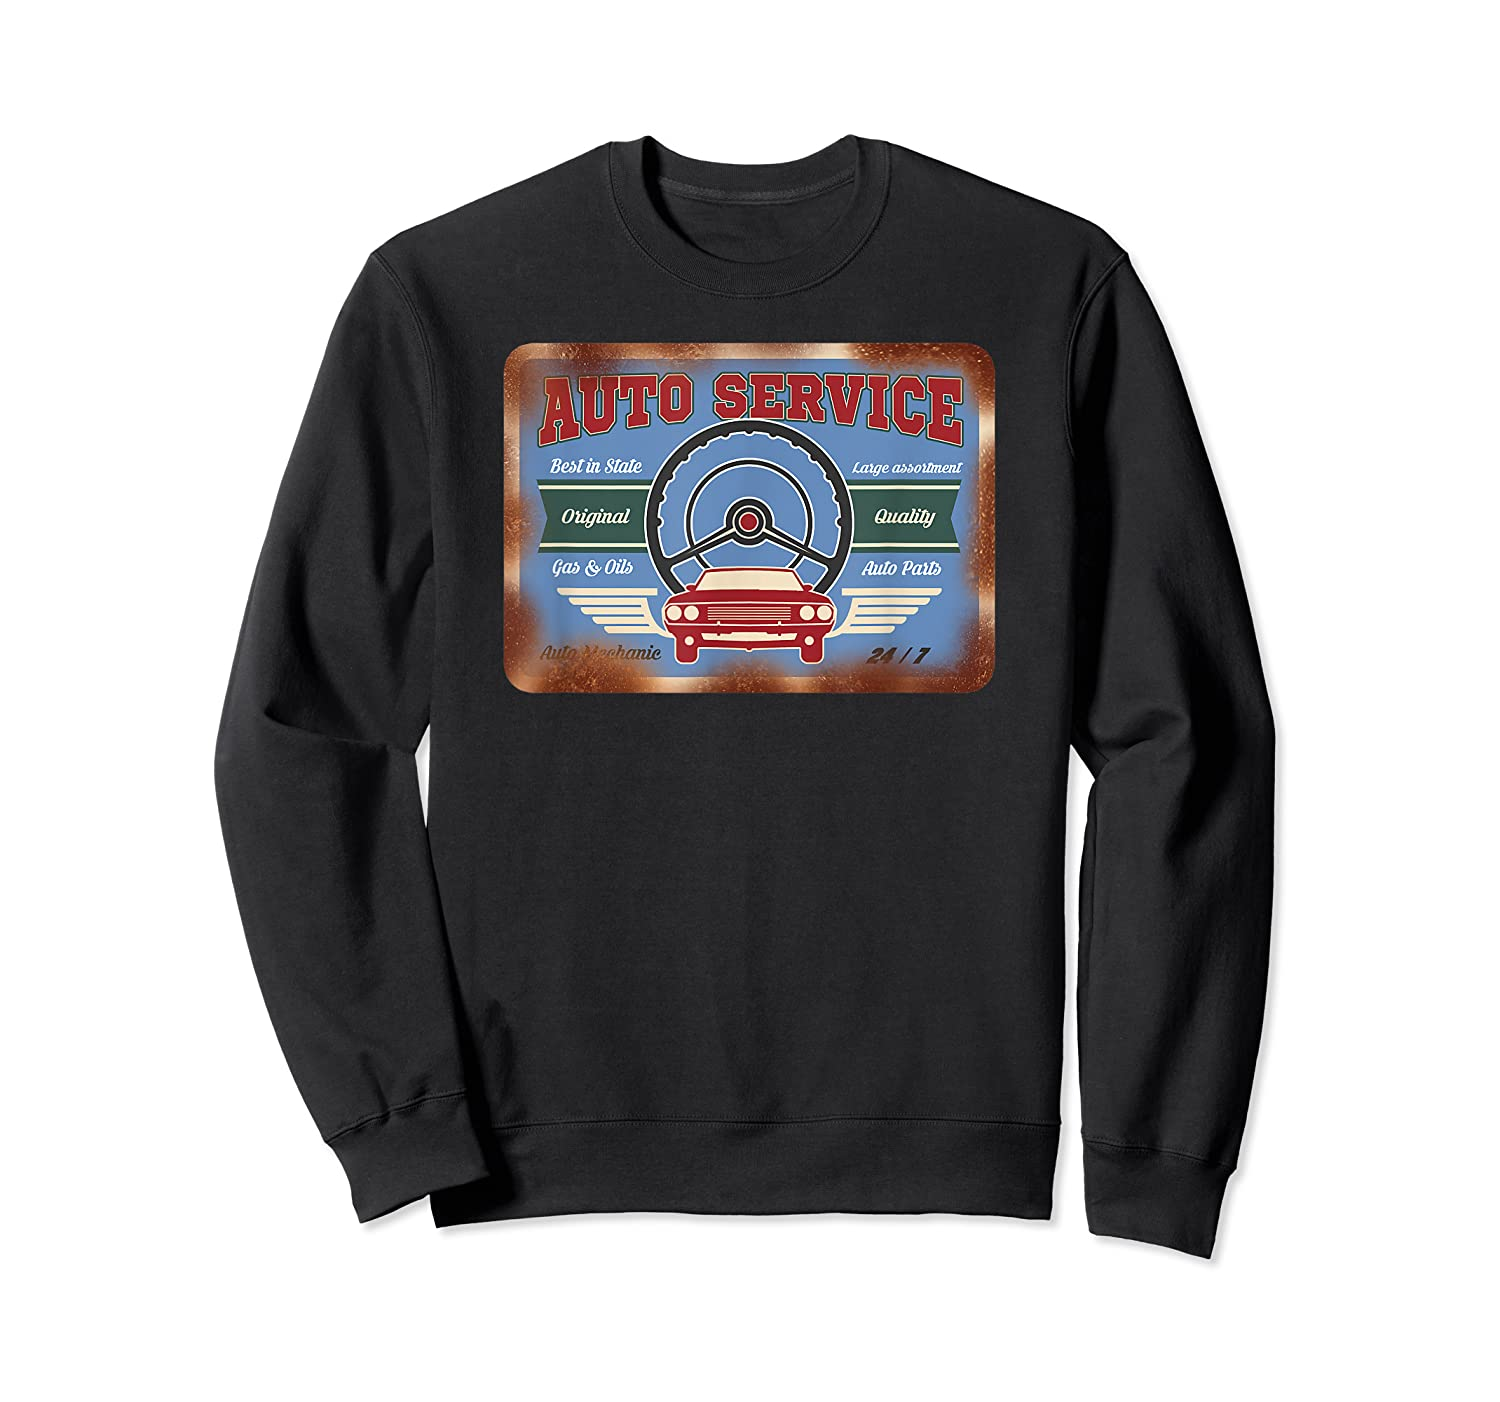 Auto Service Old Stuff Rusty Sign T Shirt Gift For Pickers Crewneck Sweater